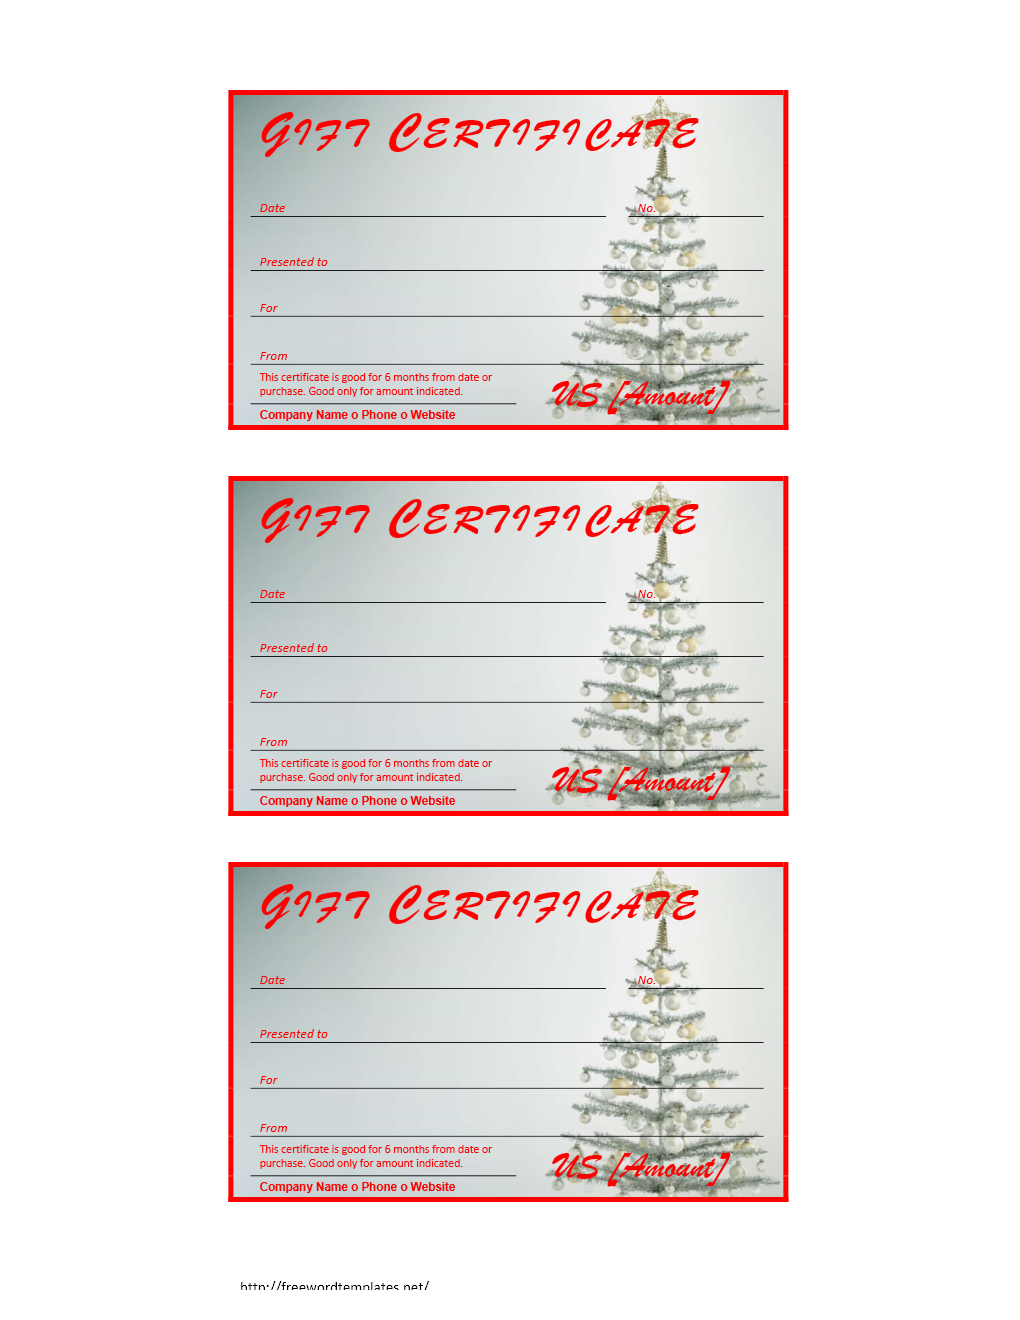 Free Gift Certificate Archives   Freewordtemplates - Free Printable Xmas Gift Certificates